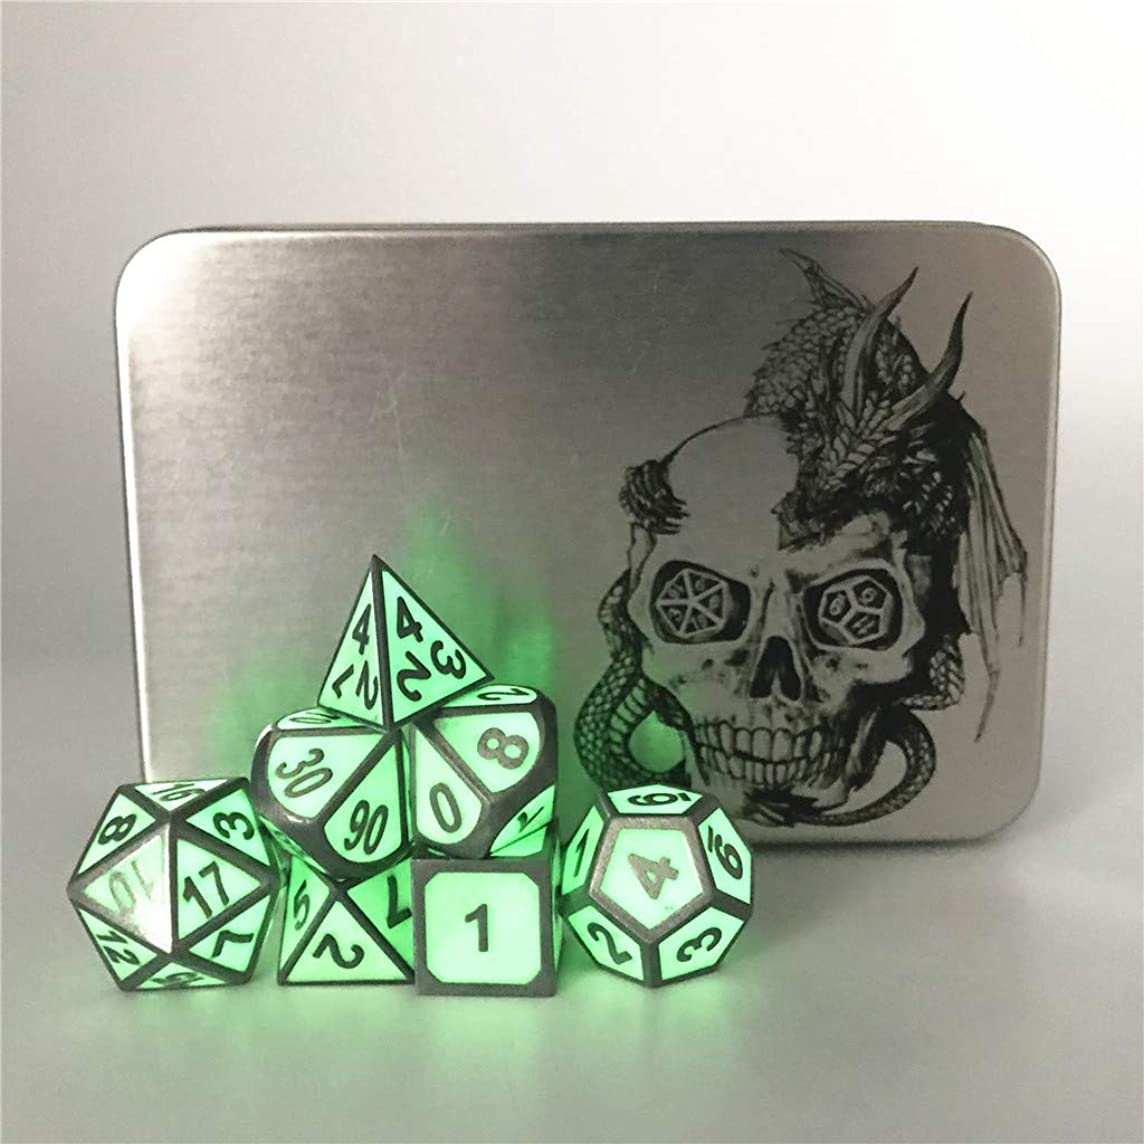 Truewon Metal Dice Set of 7 with Metal Case (Ridge Night Fluorescent Green Color)